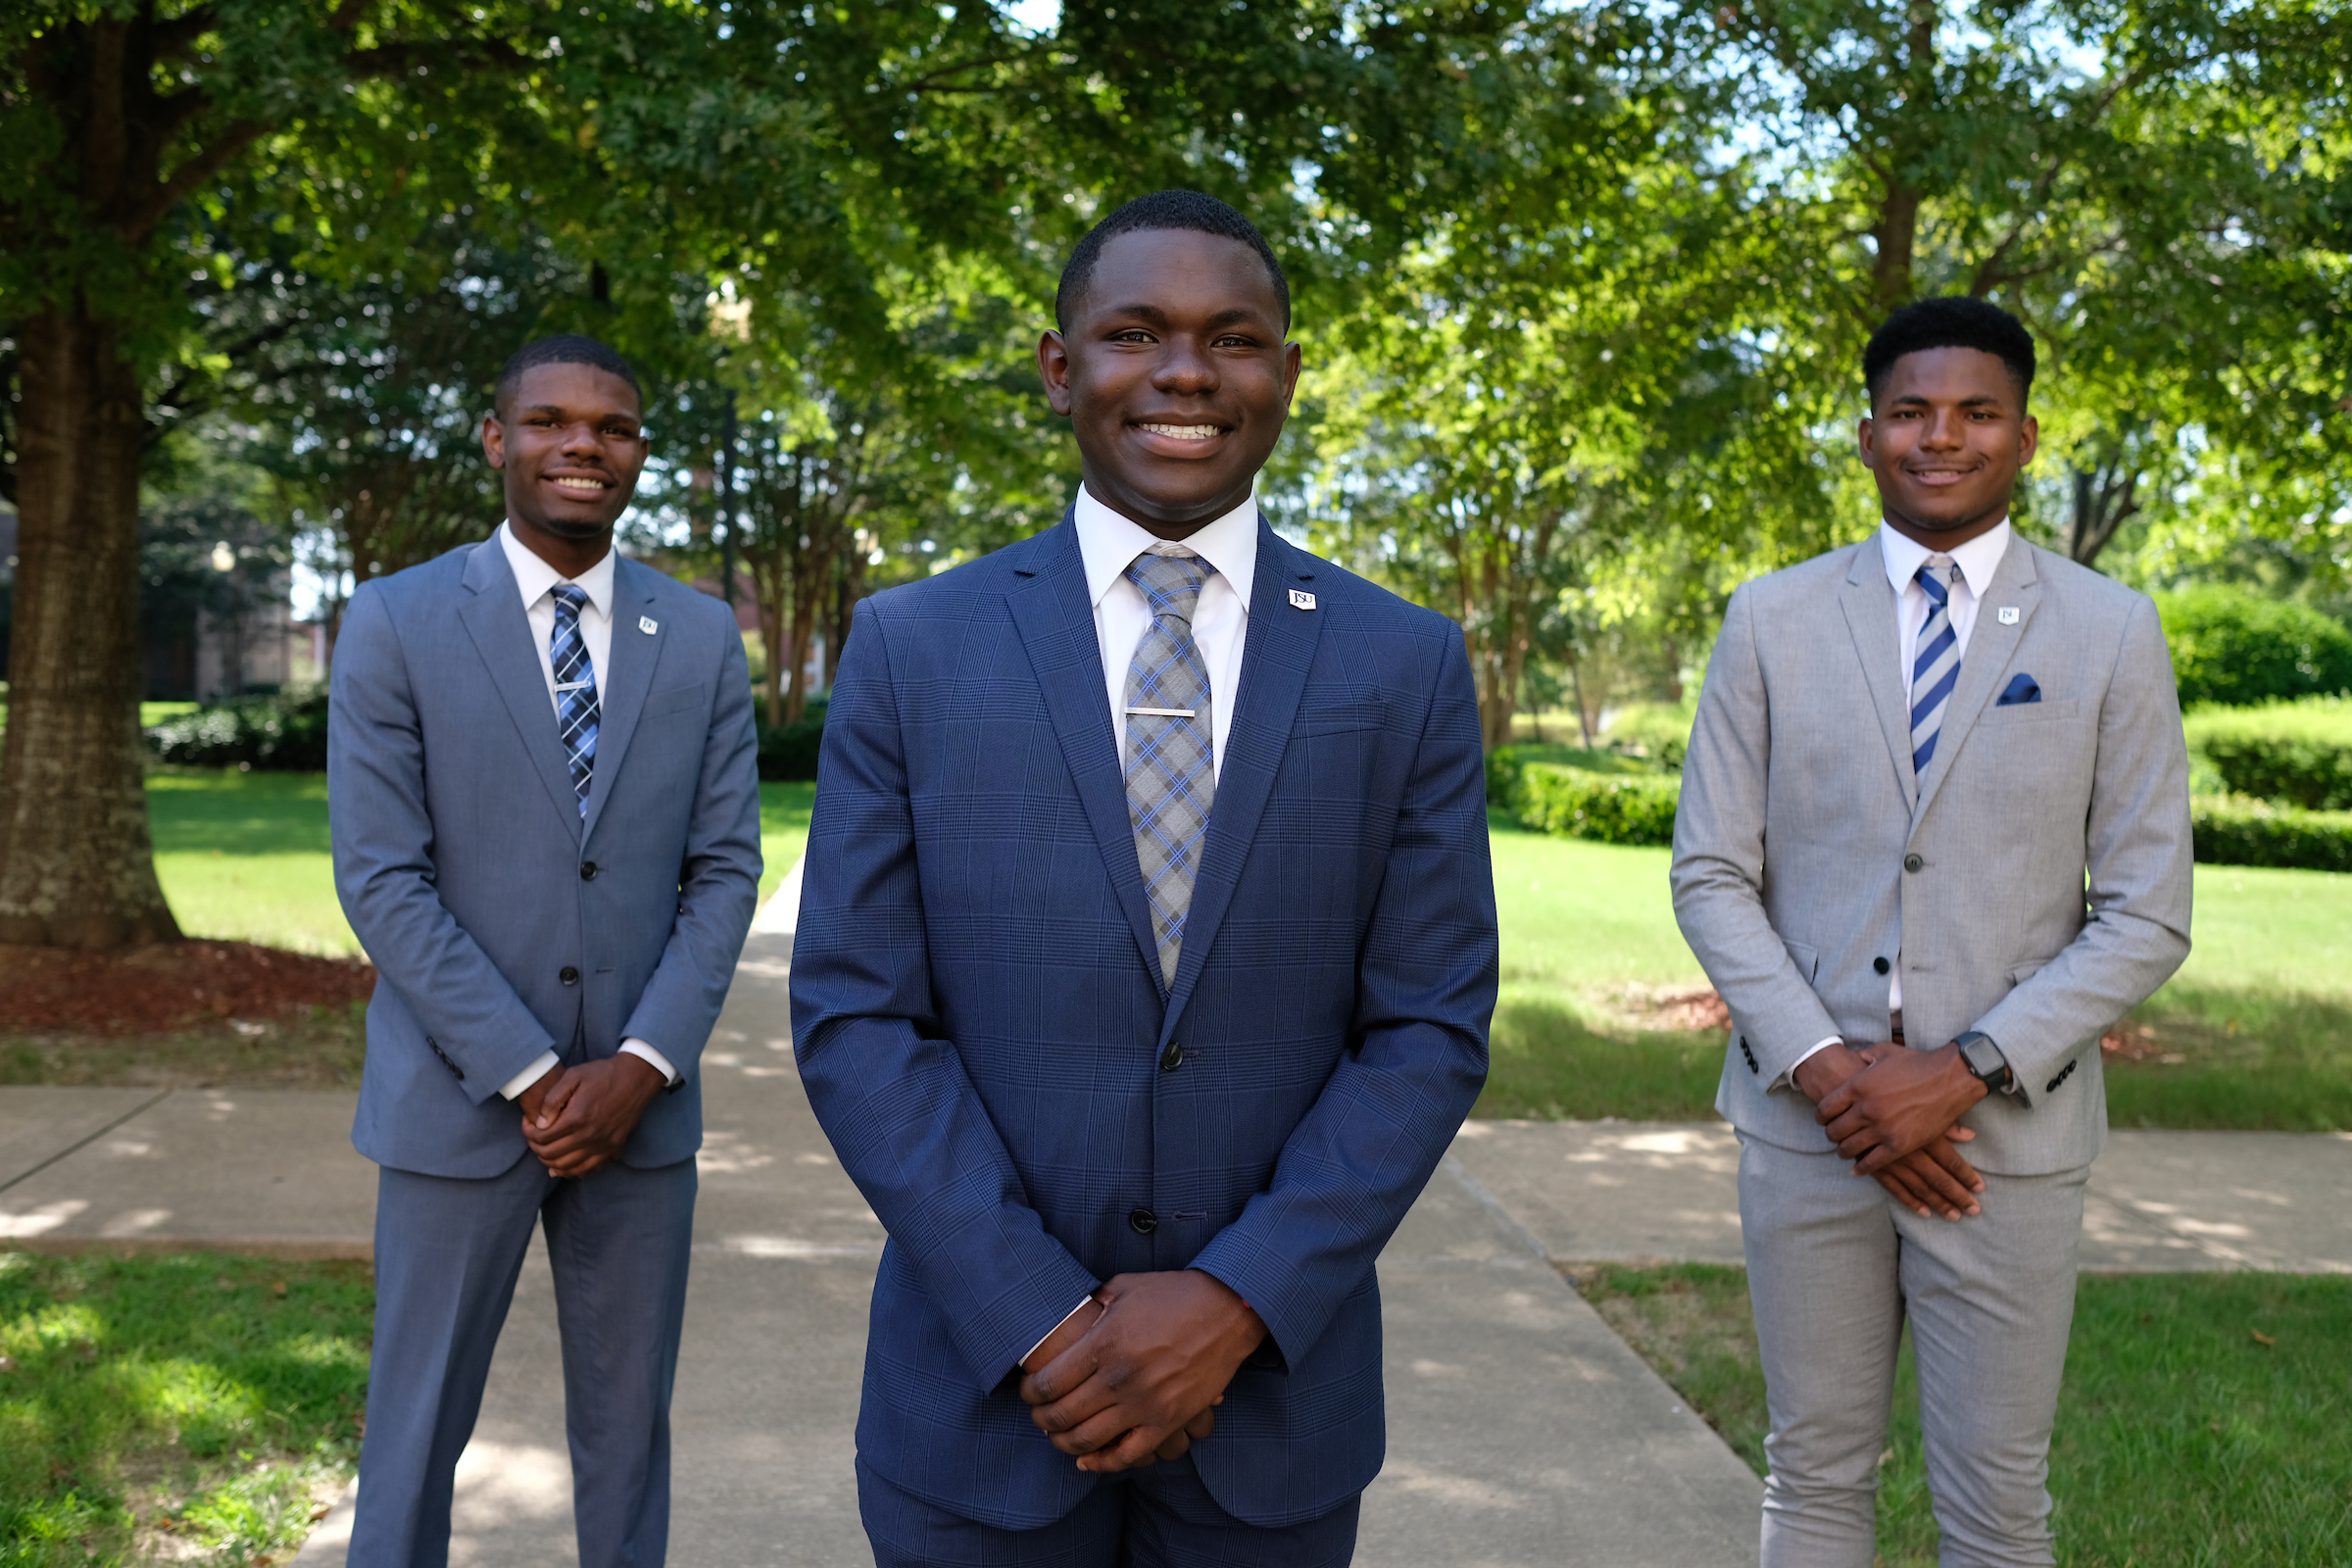 Brothers Jaquan Powell (left), LaCurtis Powell, (center) and David White, (right) have made attending Jackson State University and claiming the title of Mr. Freshman a family tradition. (Photo by Charles A. Smith/JSU)